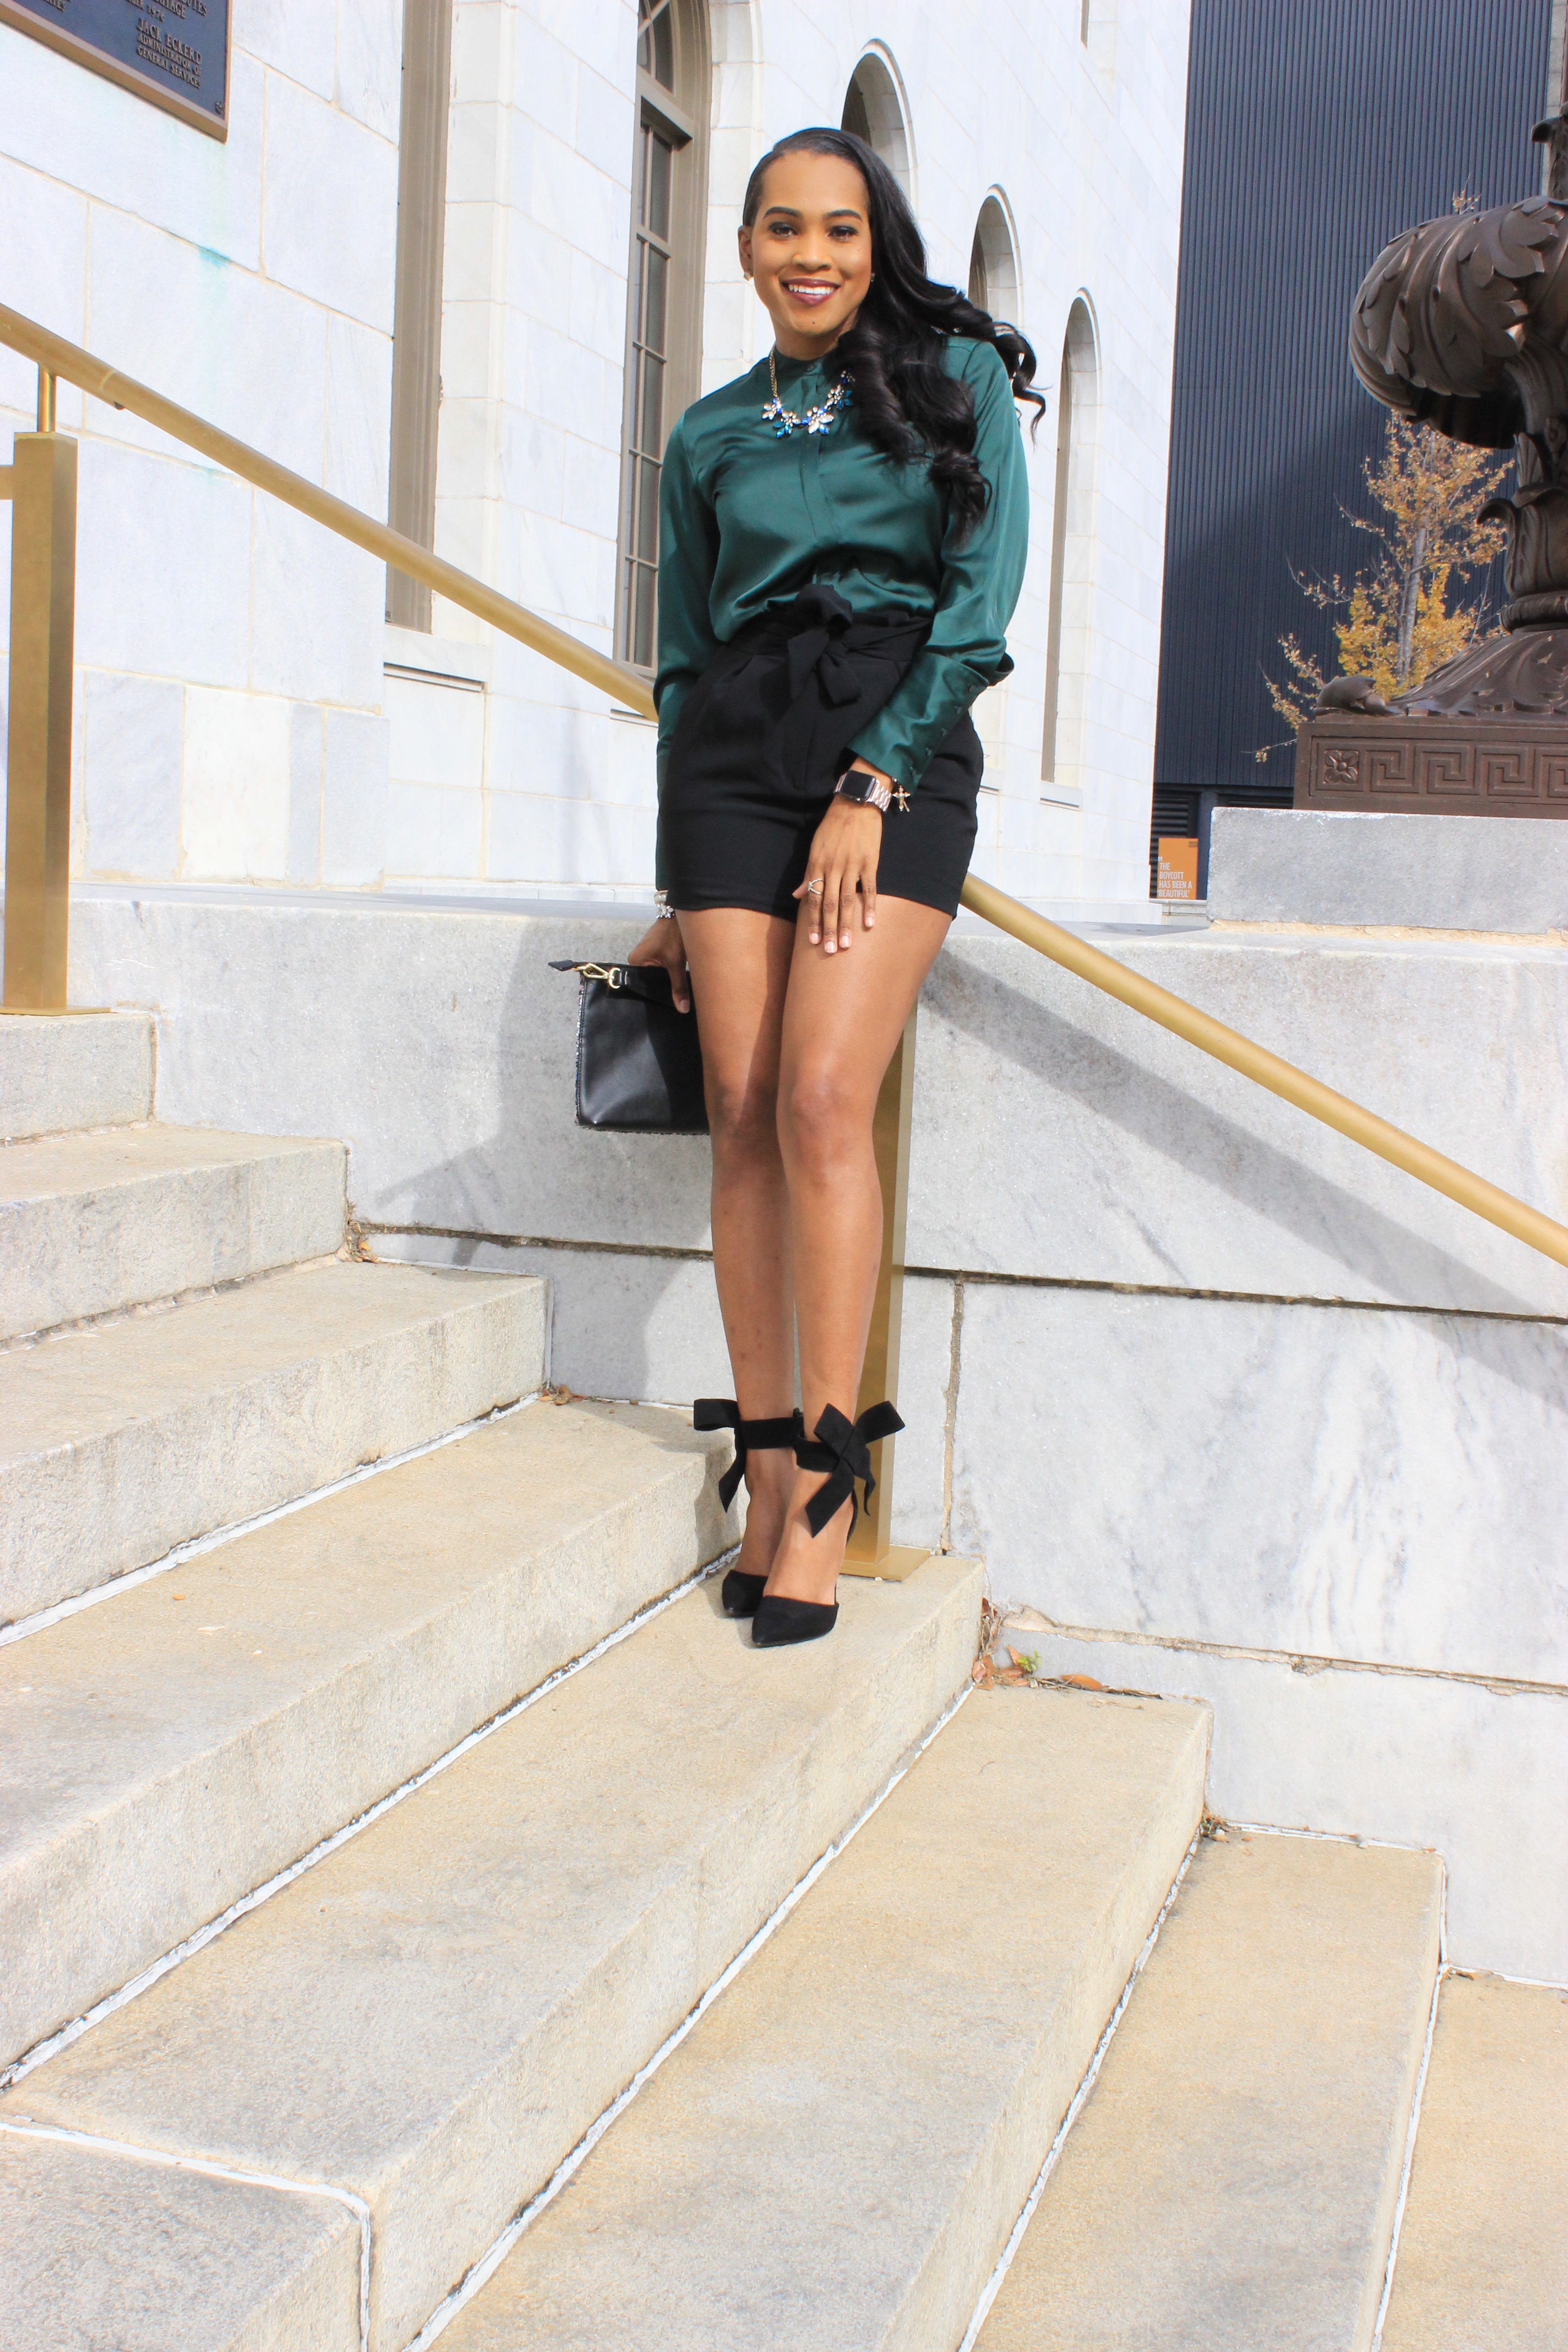 Style-Files-HM-Dark-Green-Satin-button-front-blouse-black-hm-tie-front-shorts-justfab-black-Giada-bow-heels- Gianni-Bini-Lizzy-Notch-Lapel-Collar- with-feather-hem-christmas-style-inspiration-what-to-wear-duirng-the-holidays-oohlalablog-11